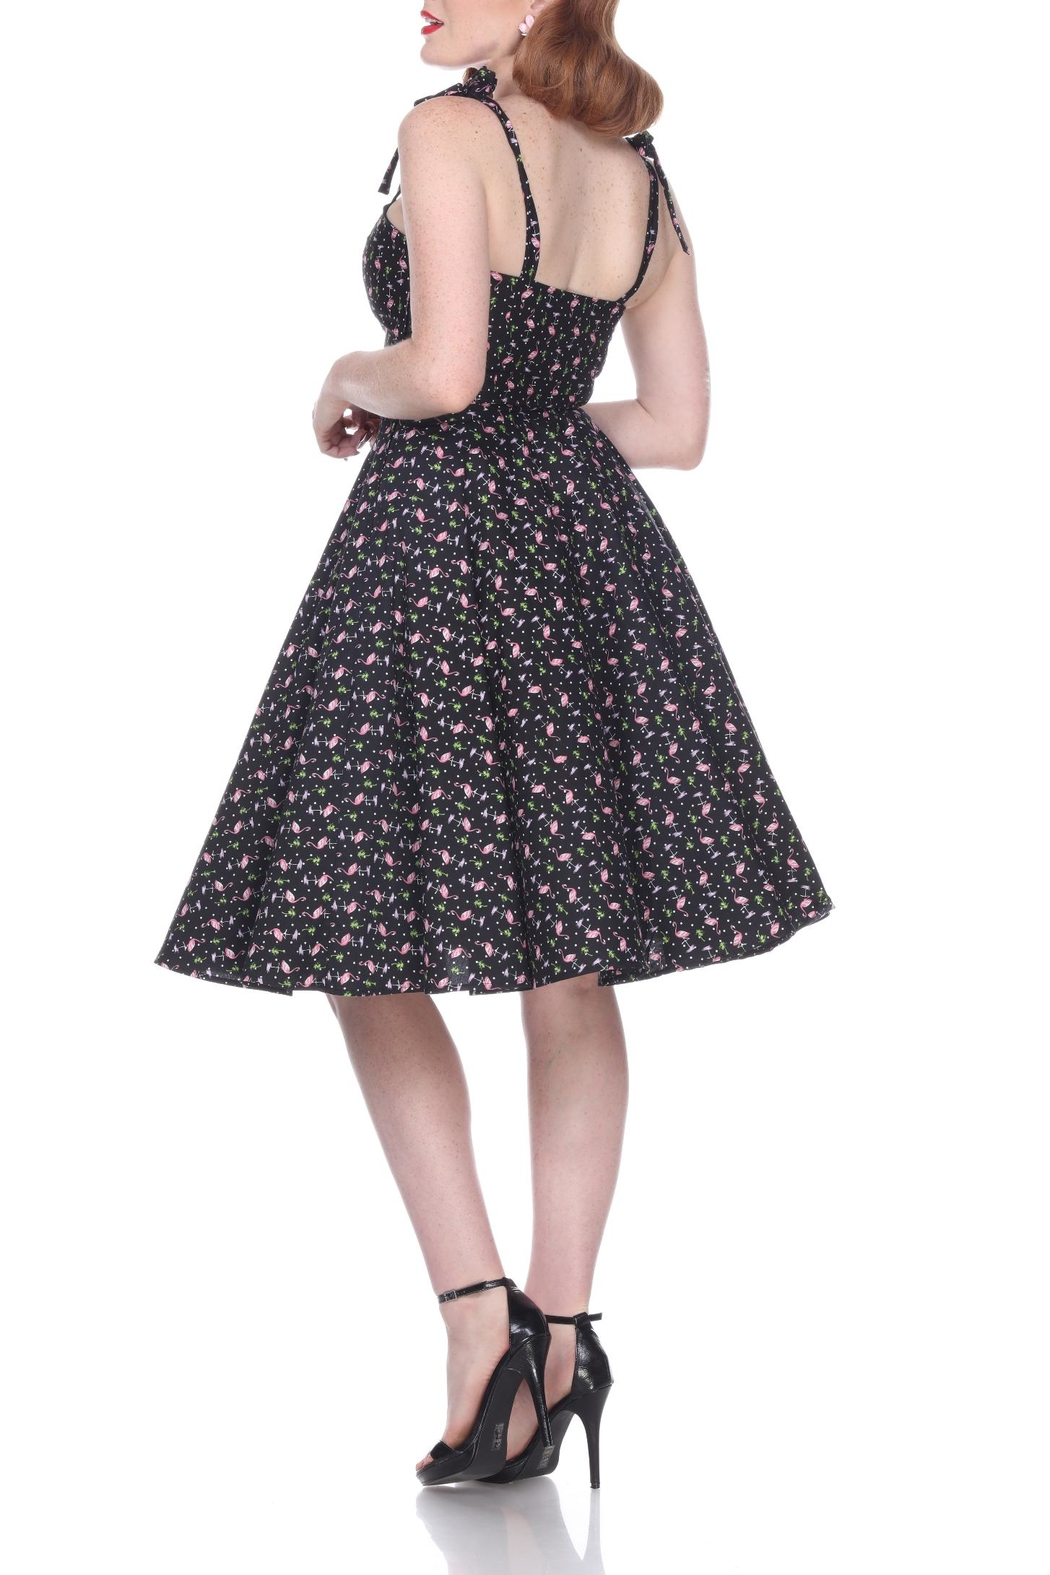 Bettie Page Clothing Flamingo Swing Dress - Front Full Image